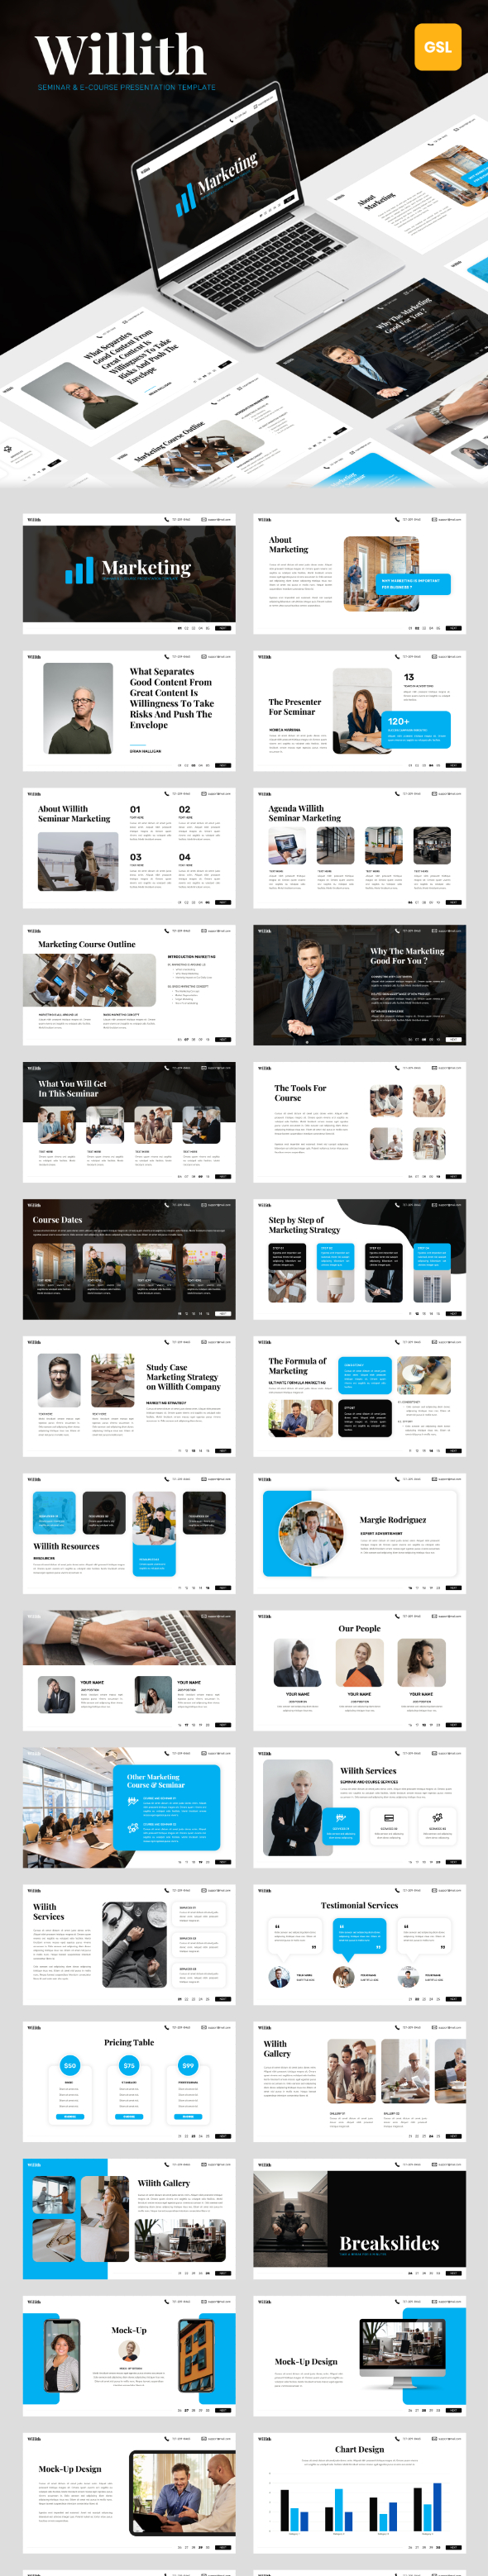 06/03/2019· preparing seminar agenda using templates. Graphicriver 31284942 Wilith Seminar And Course Google Slides Template Zip Updated Nulled Free Download